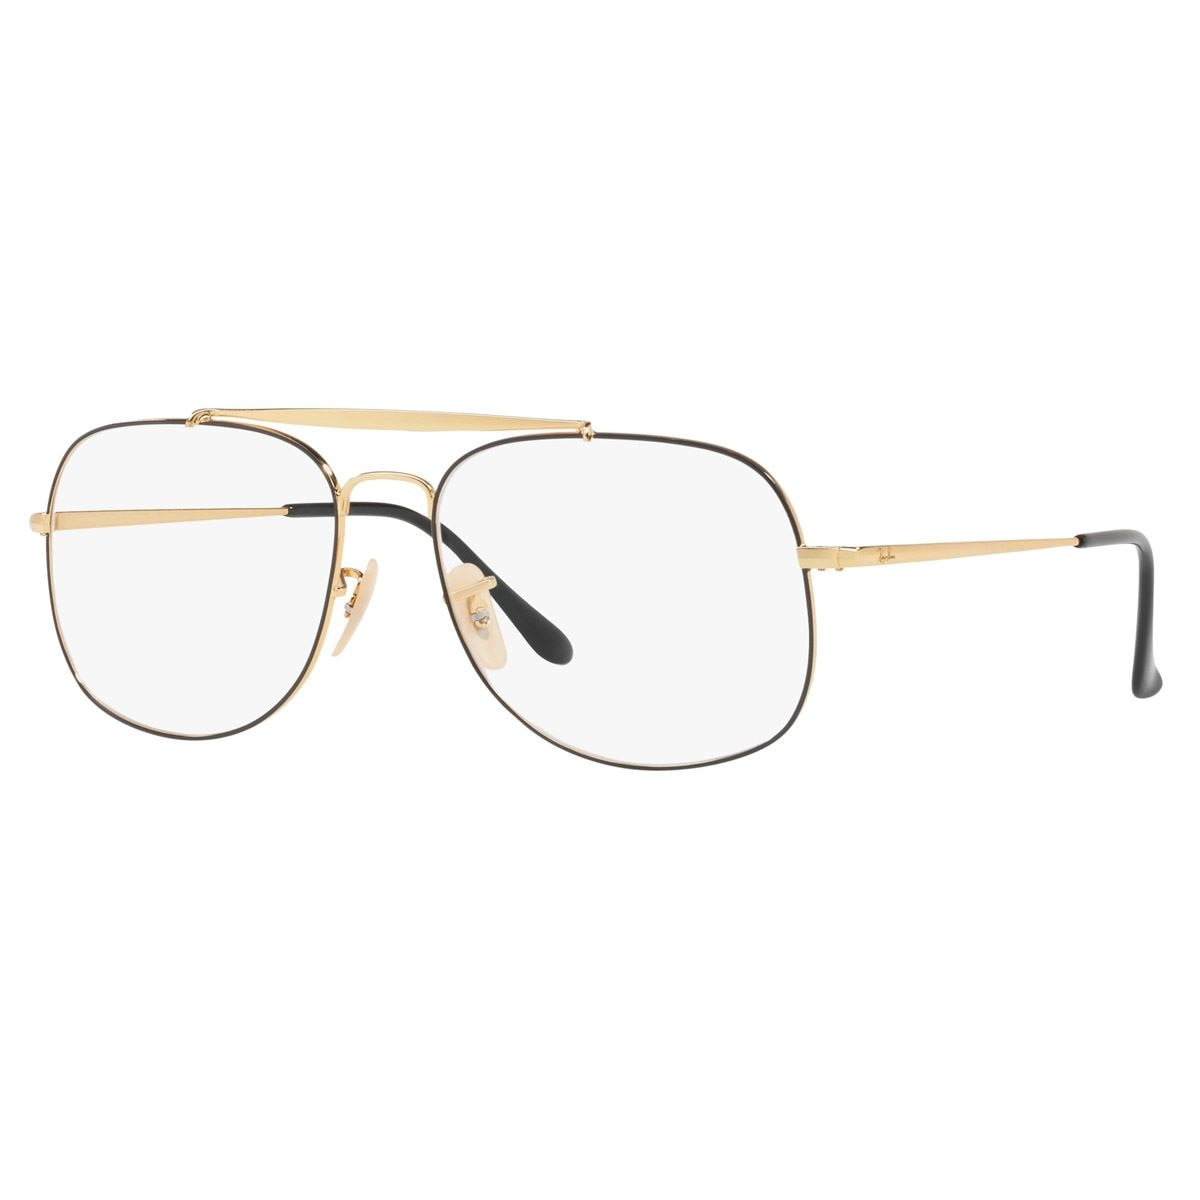 ae3822a69cf4c Ray ban the general armazón oro-negro en metal - Sanborns